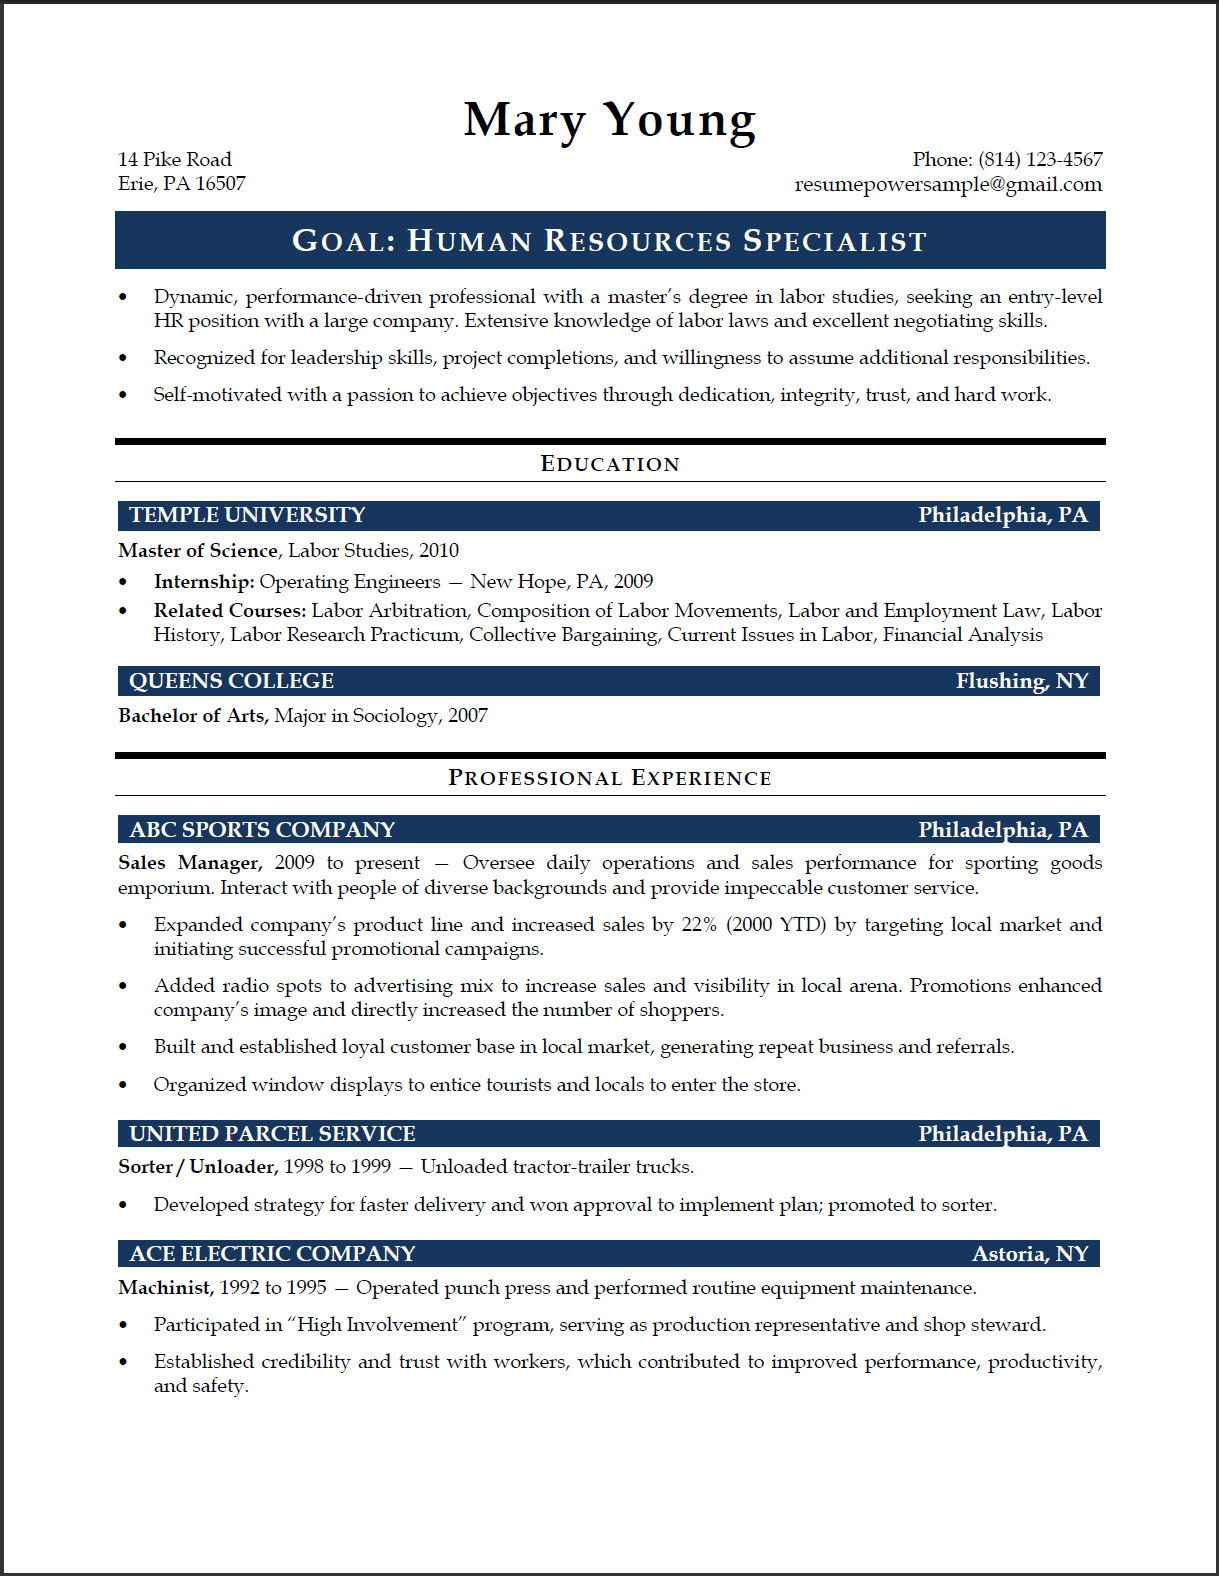 Resume Power Phrases Resume Free Picture Resume Samples Resume Power ...